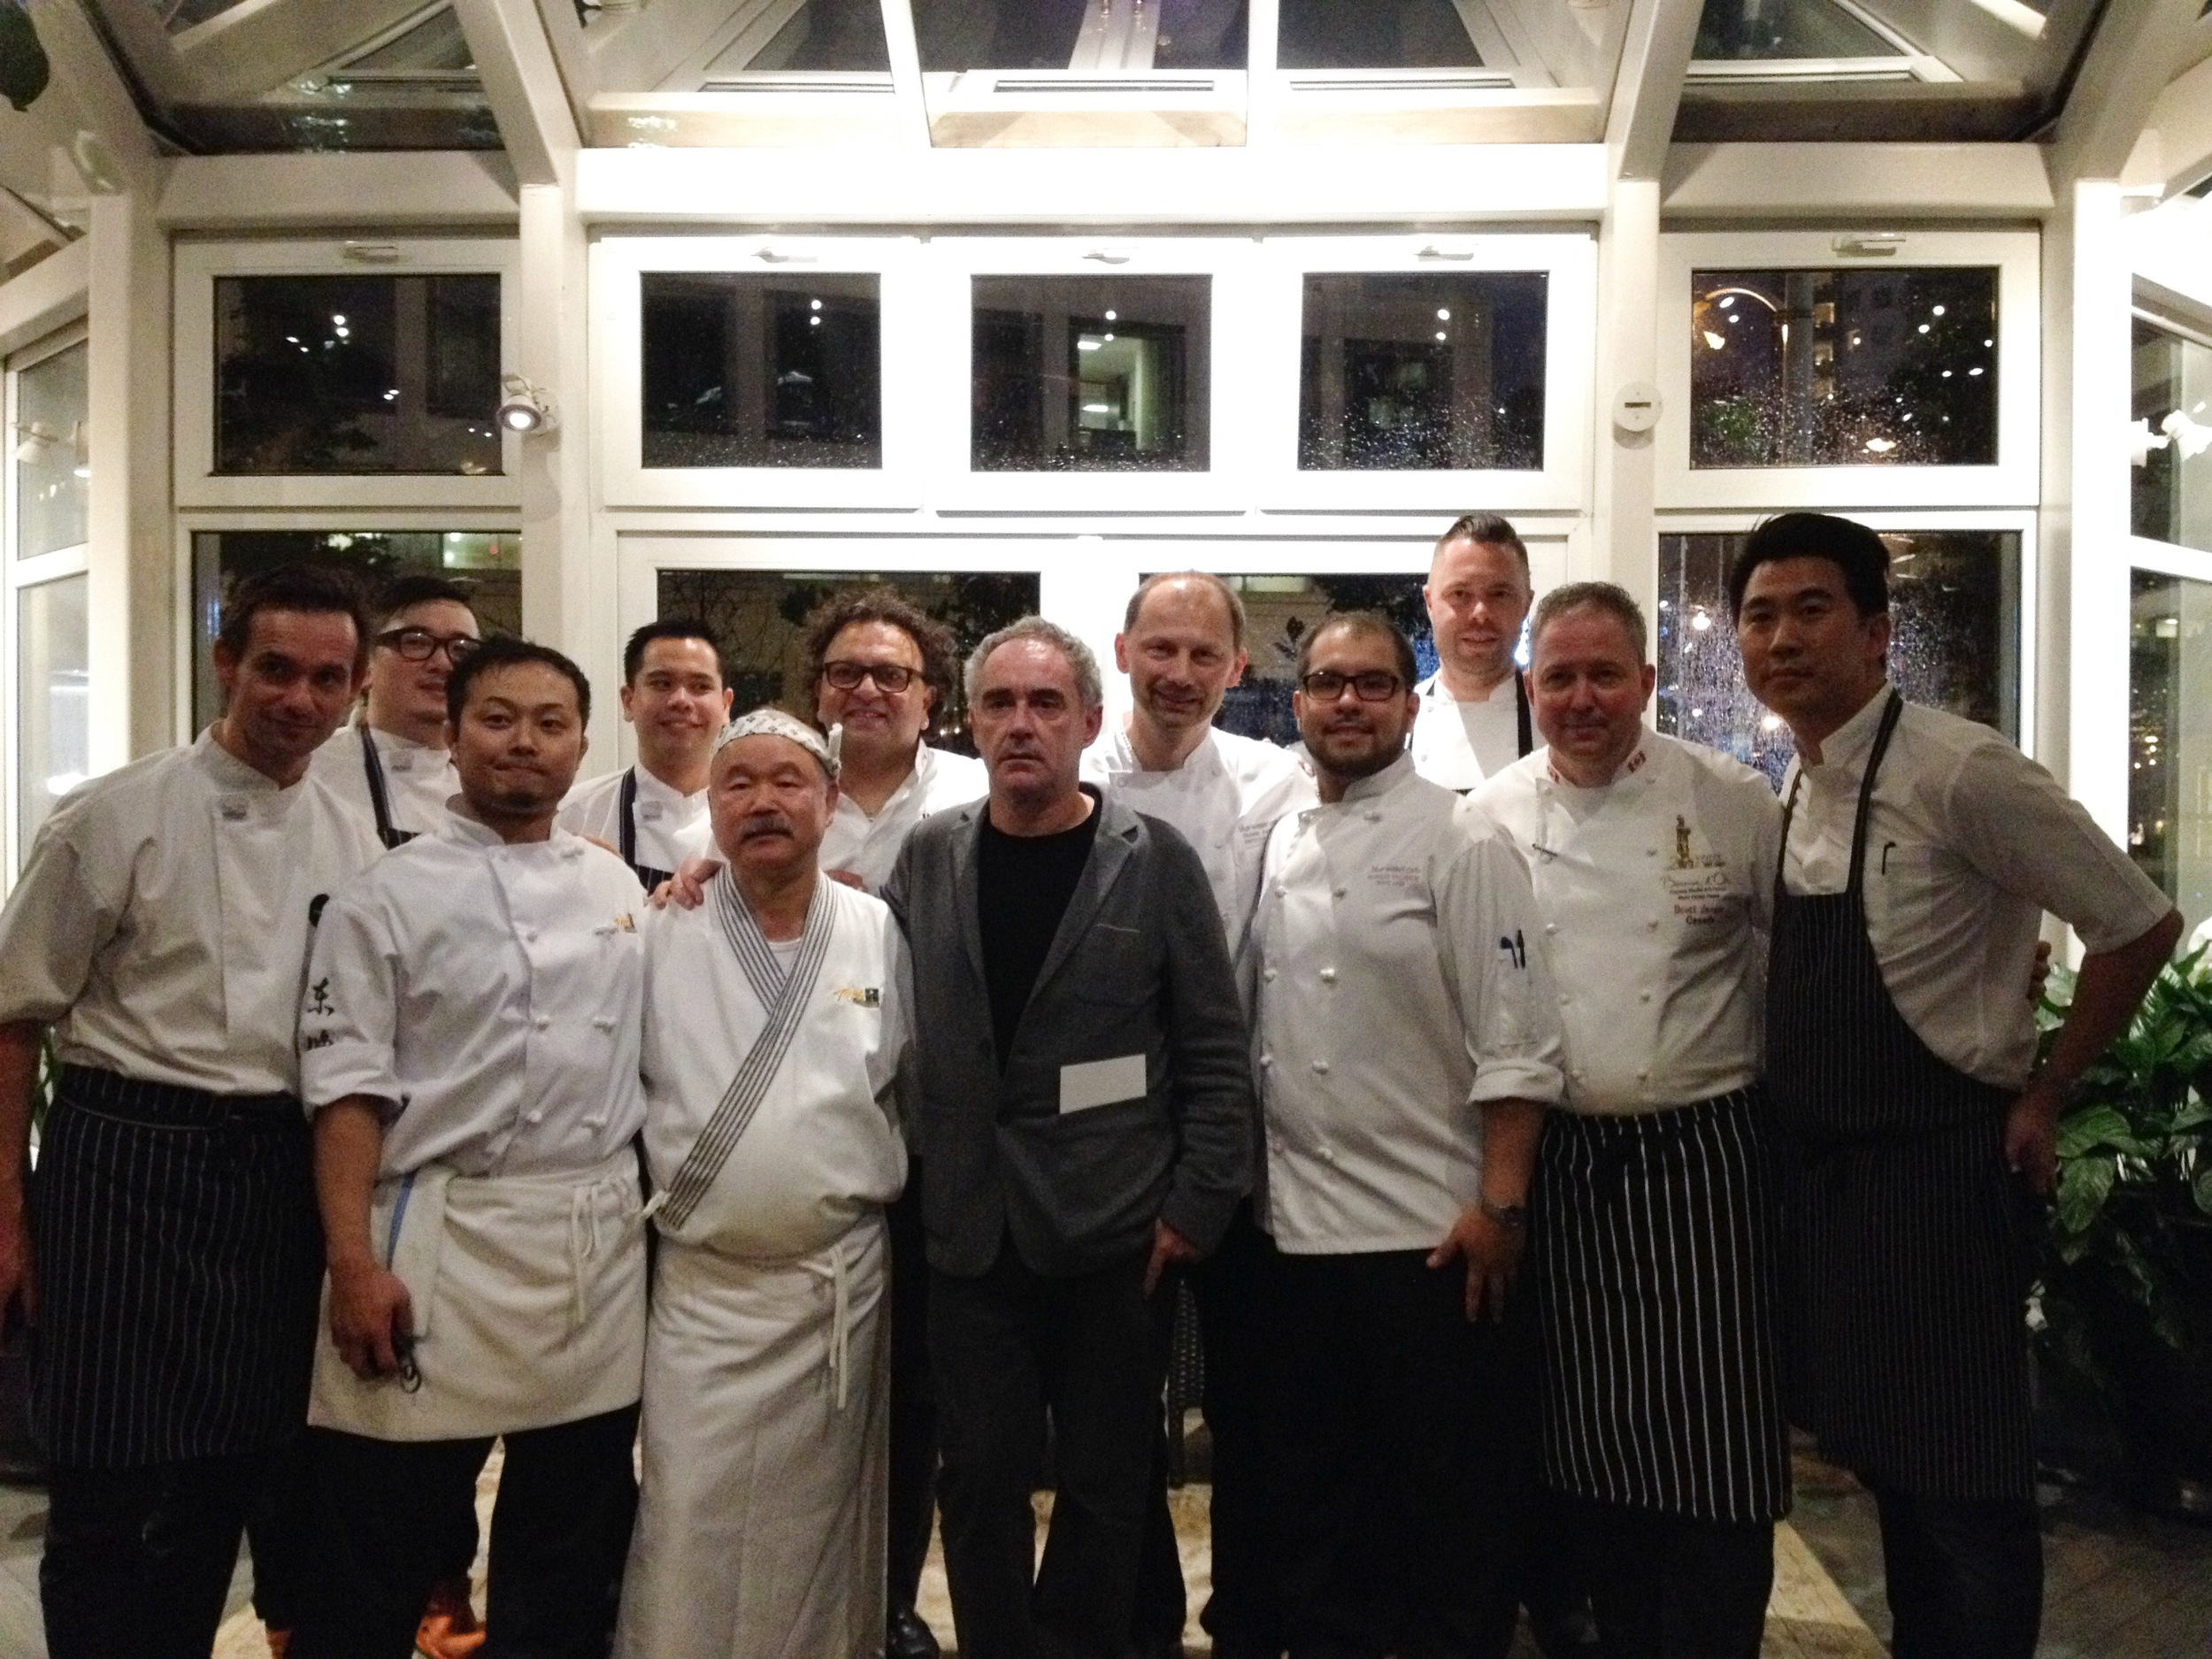 Some Vancouver chefs and their assistants with Ferran Adria, middle, on his Vancouver visit. Front row, from left, Thomas Haas, Masa Baba, Tojo Hidekazu, Adria, Ricardo Valverde, Scott Jaeger, Angus An; back row, from left, Lovett Sheng, Elmo Pinpin, Vikram Vij, Frank Pabst and Sean Cousin. Photo by Bethany Leng